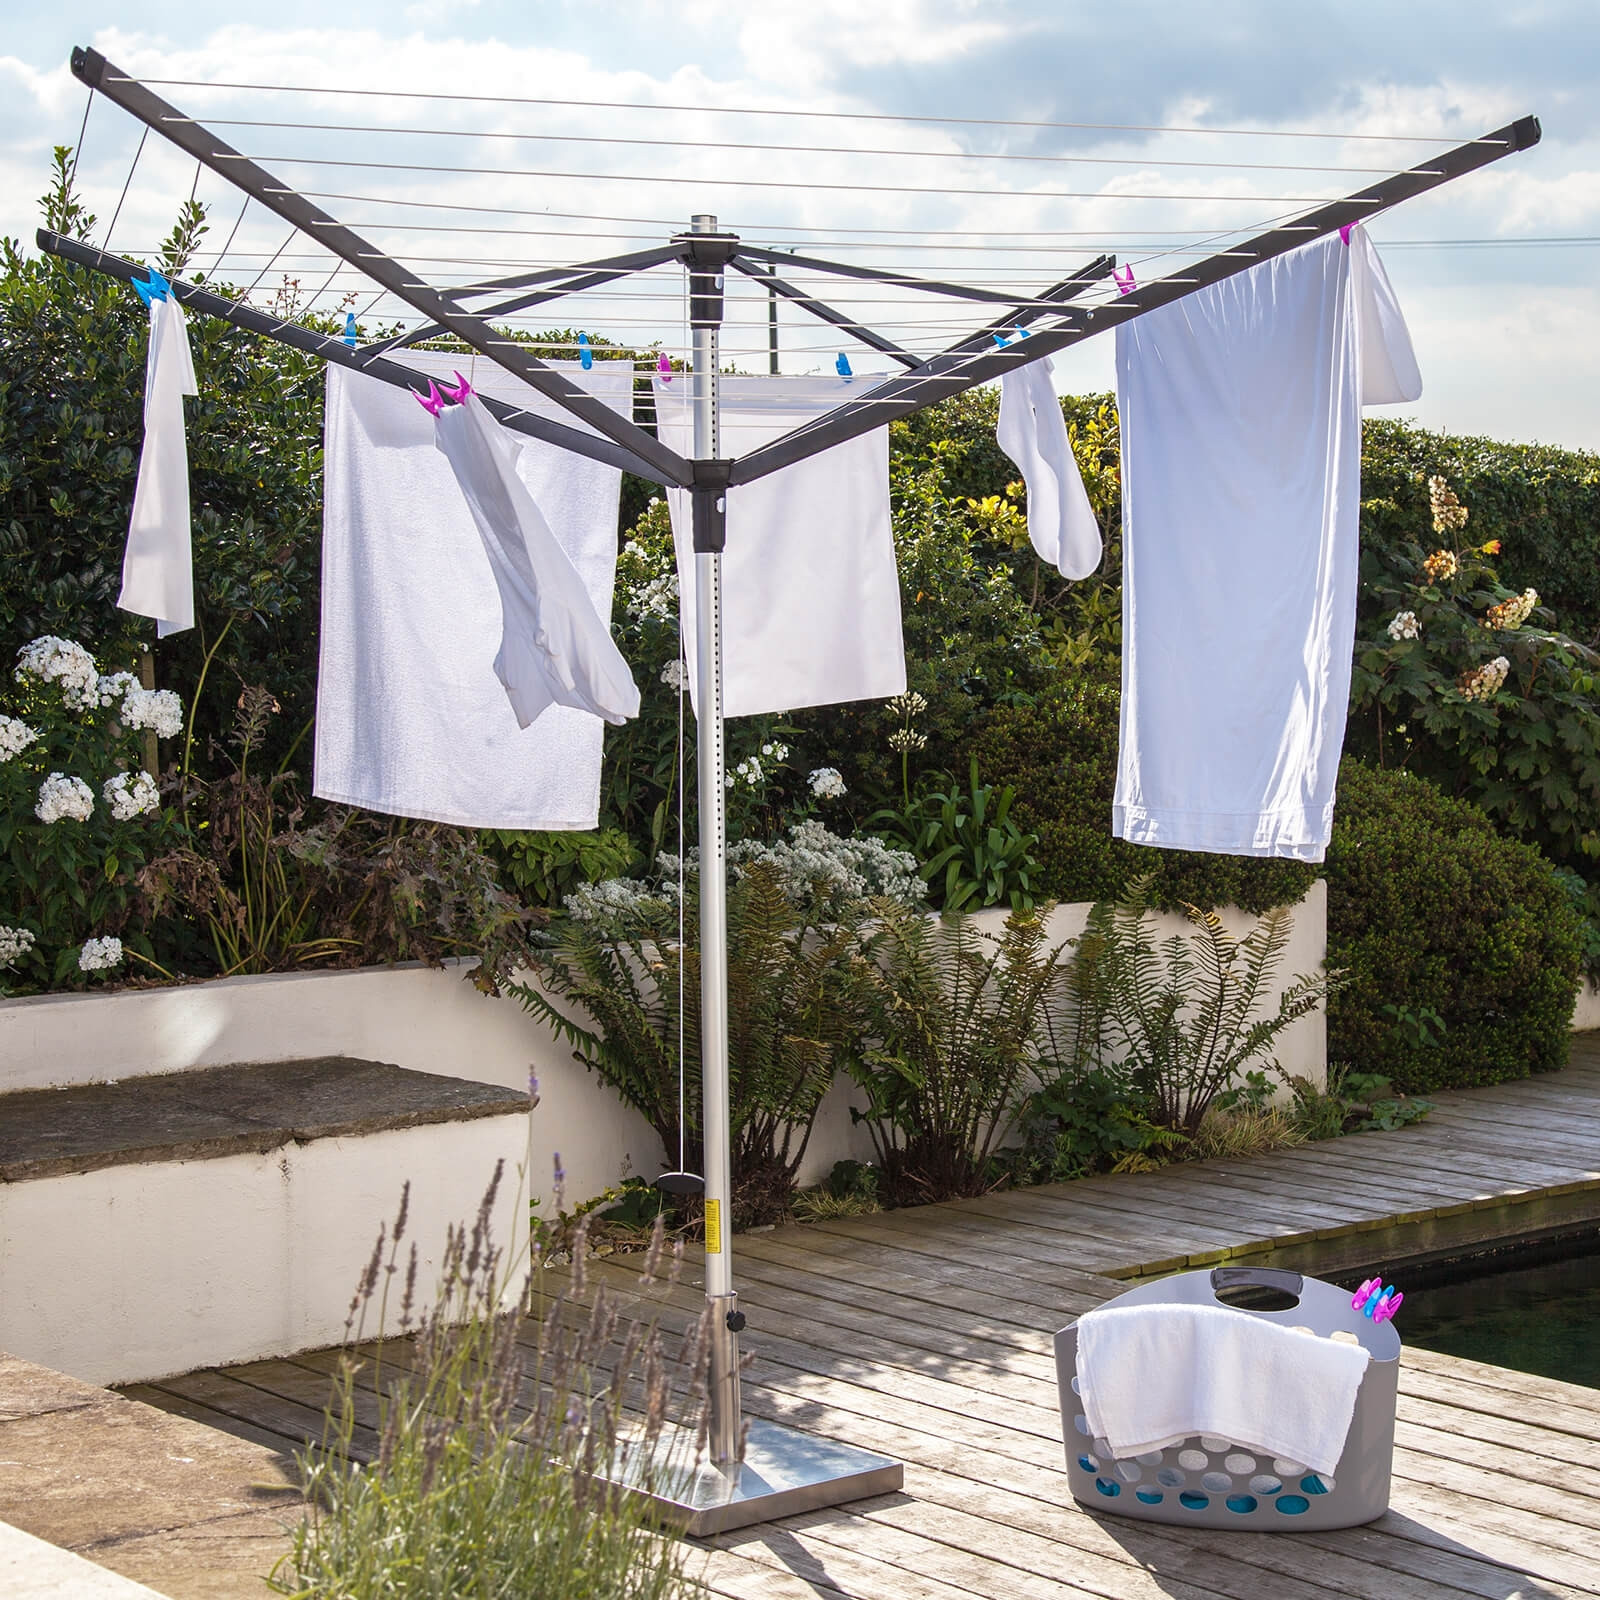 Rotary Clothes Airer Buying Guide